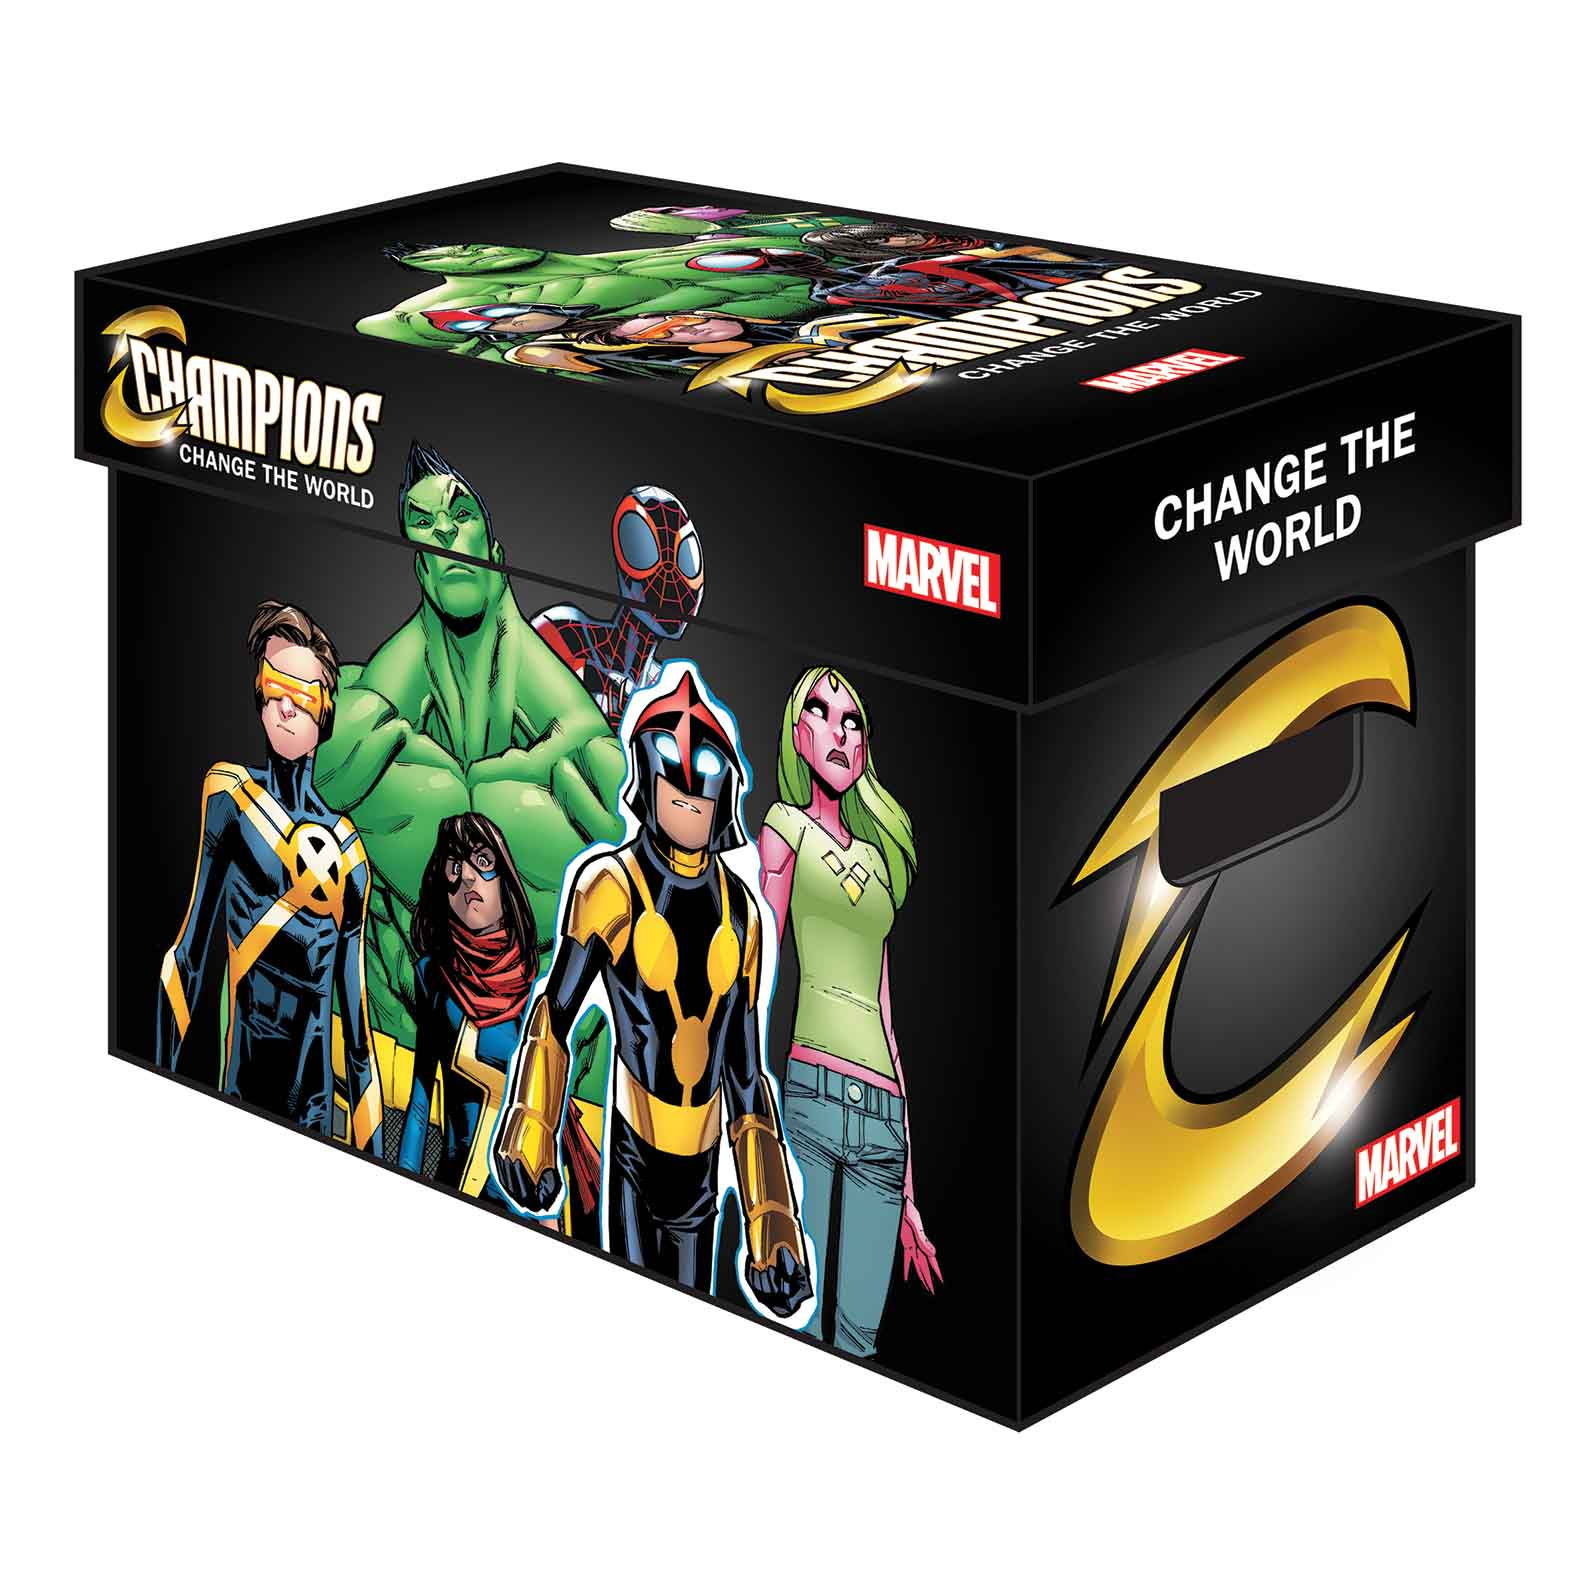 Protect Your Collection With New MARVEL GRAPHIC COMIC BOXES!